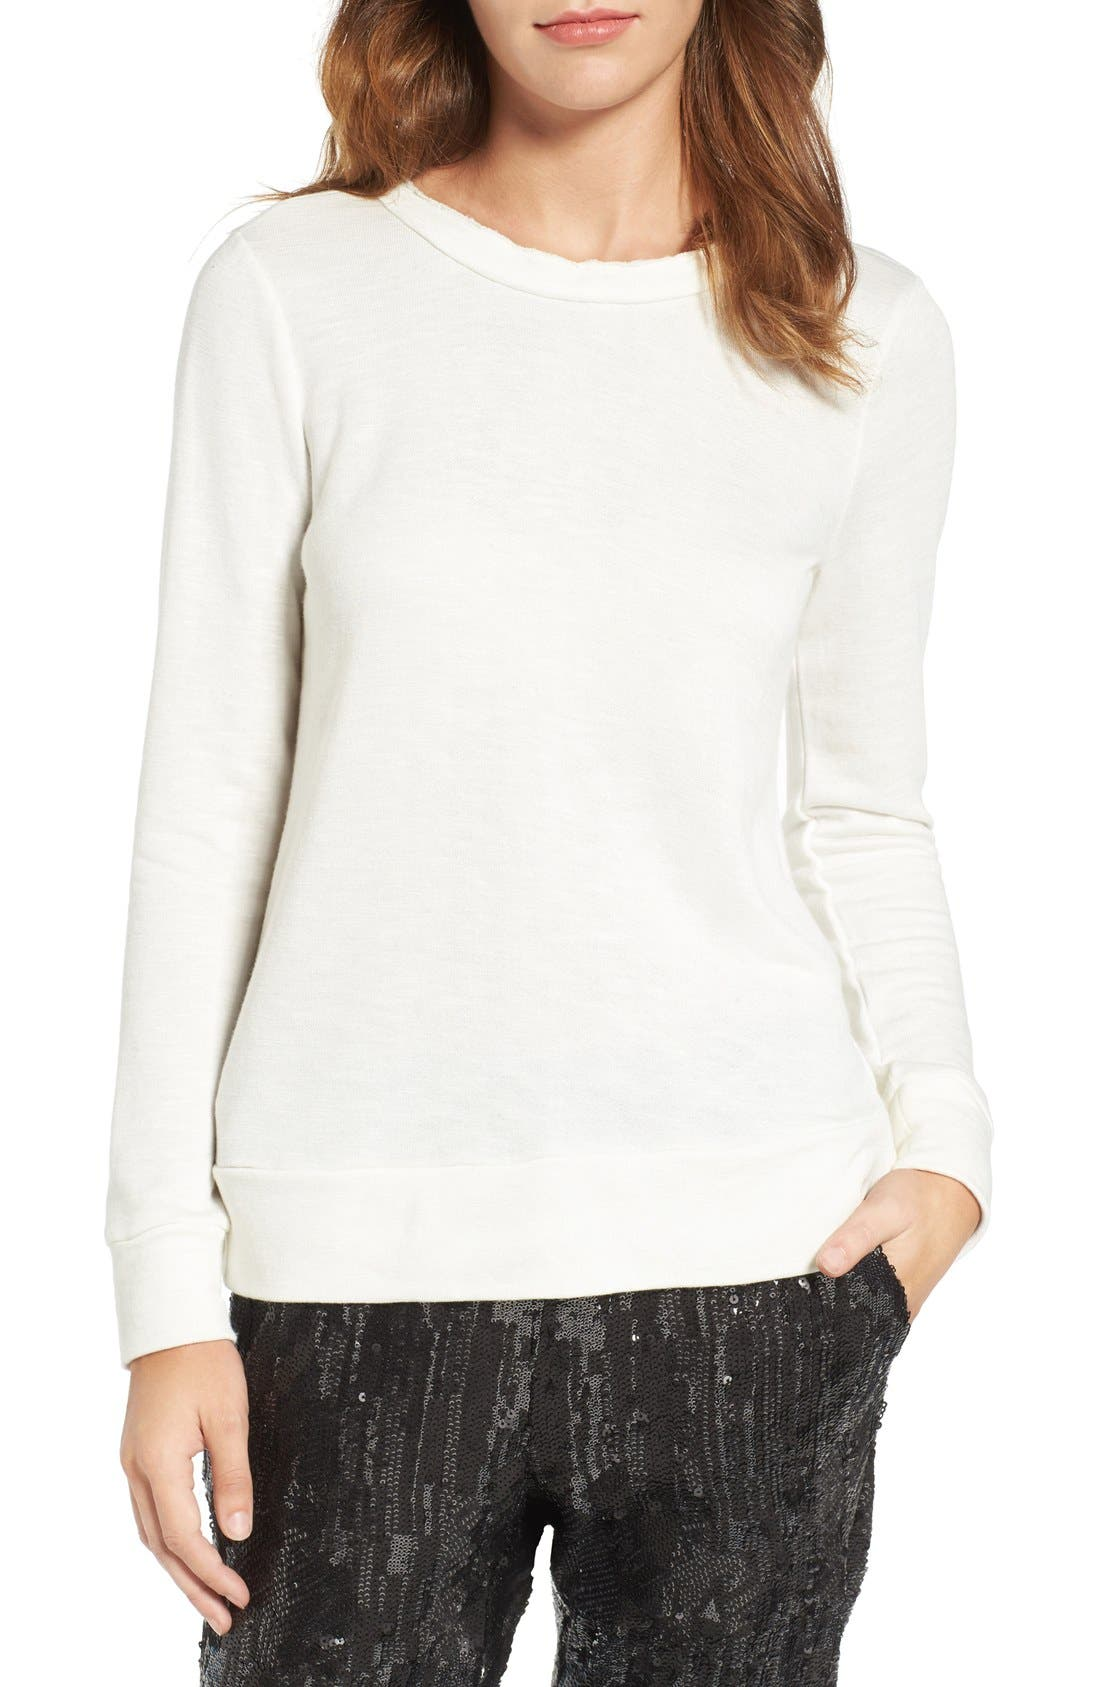 Alternate Image 1 Selected - Chelsea28 Ruffle Back Sweatshirt